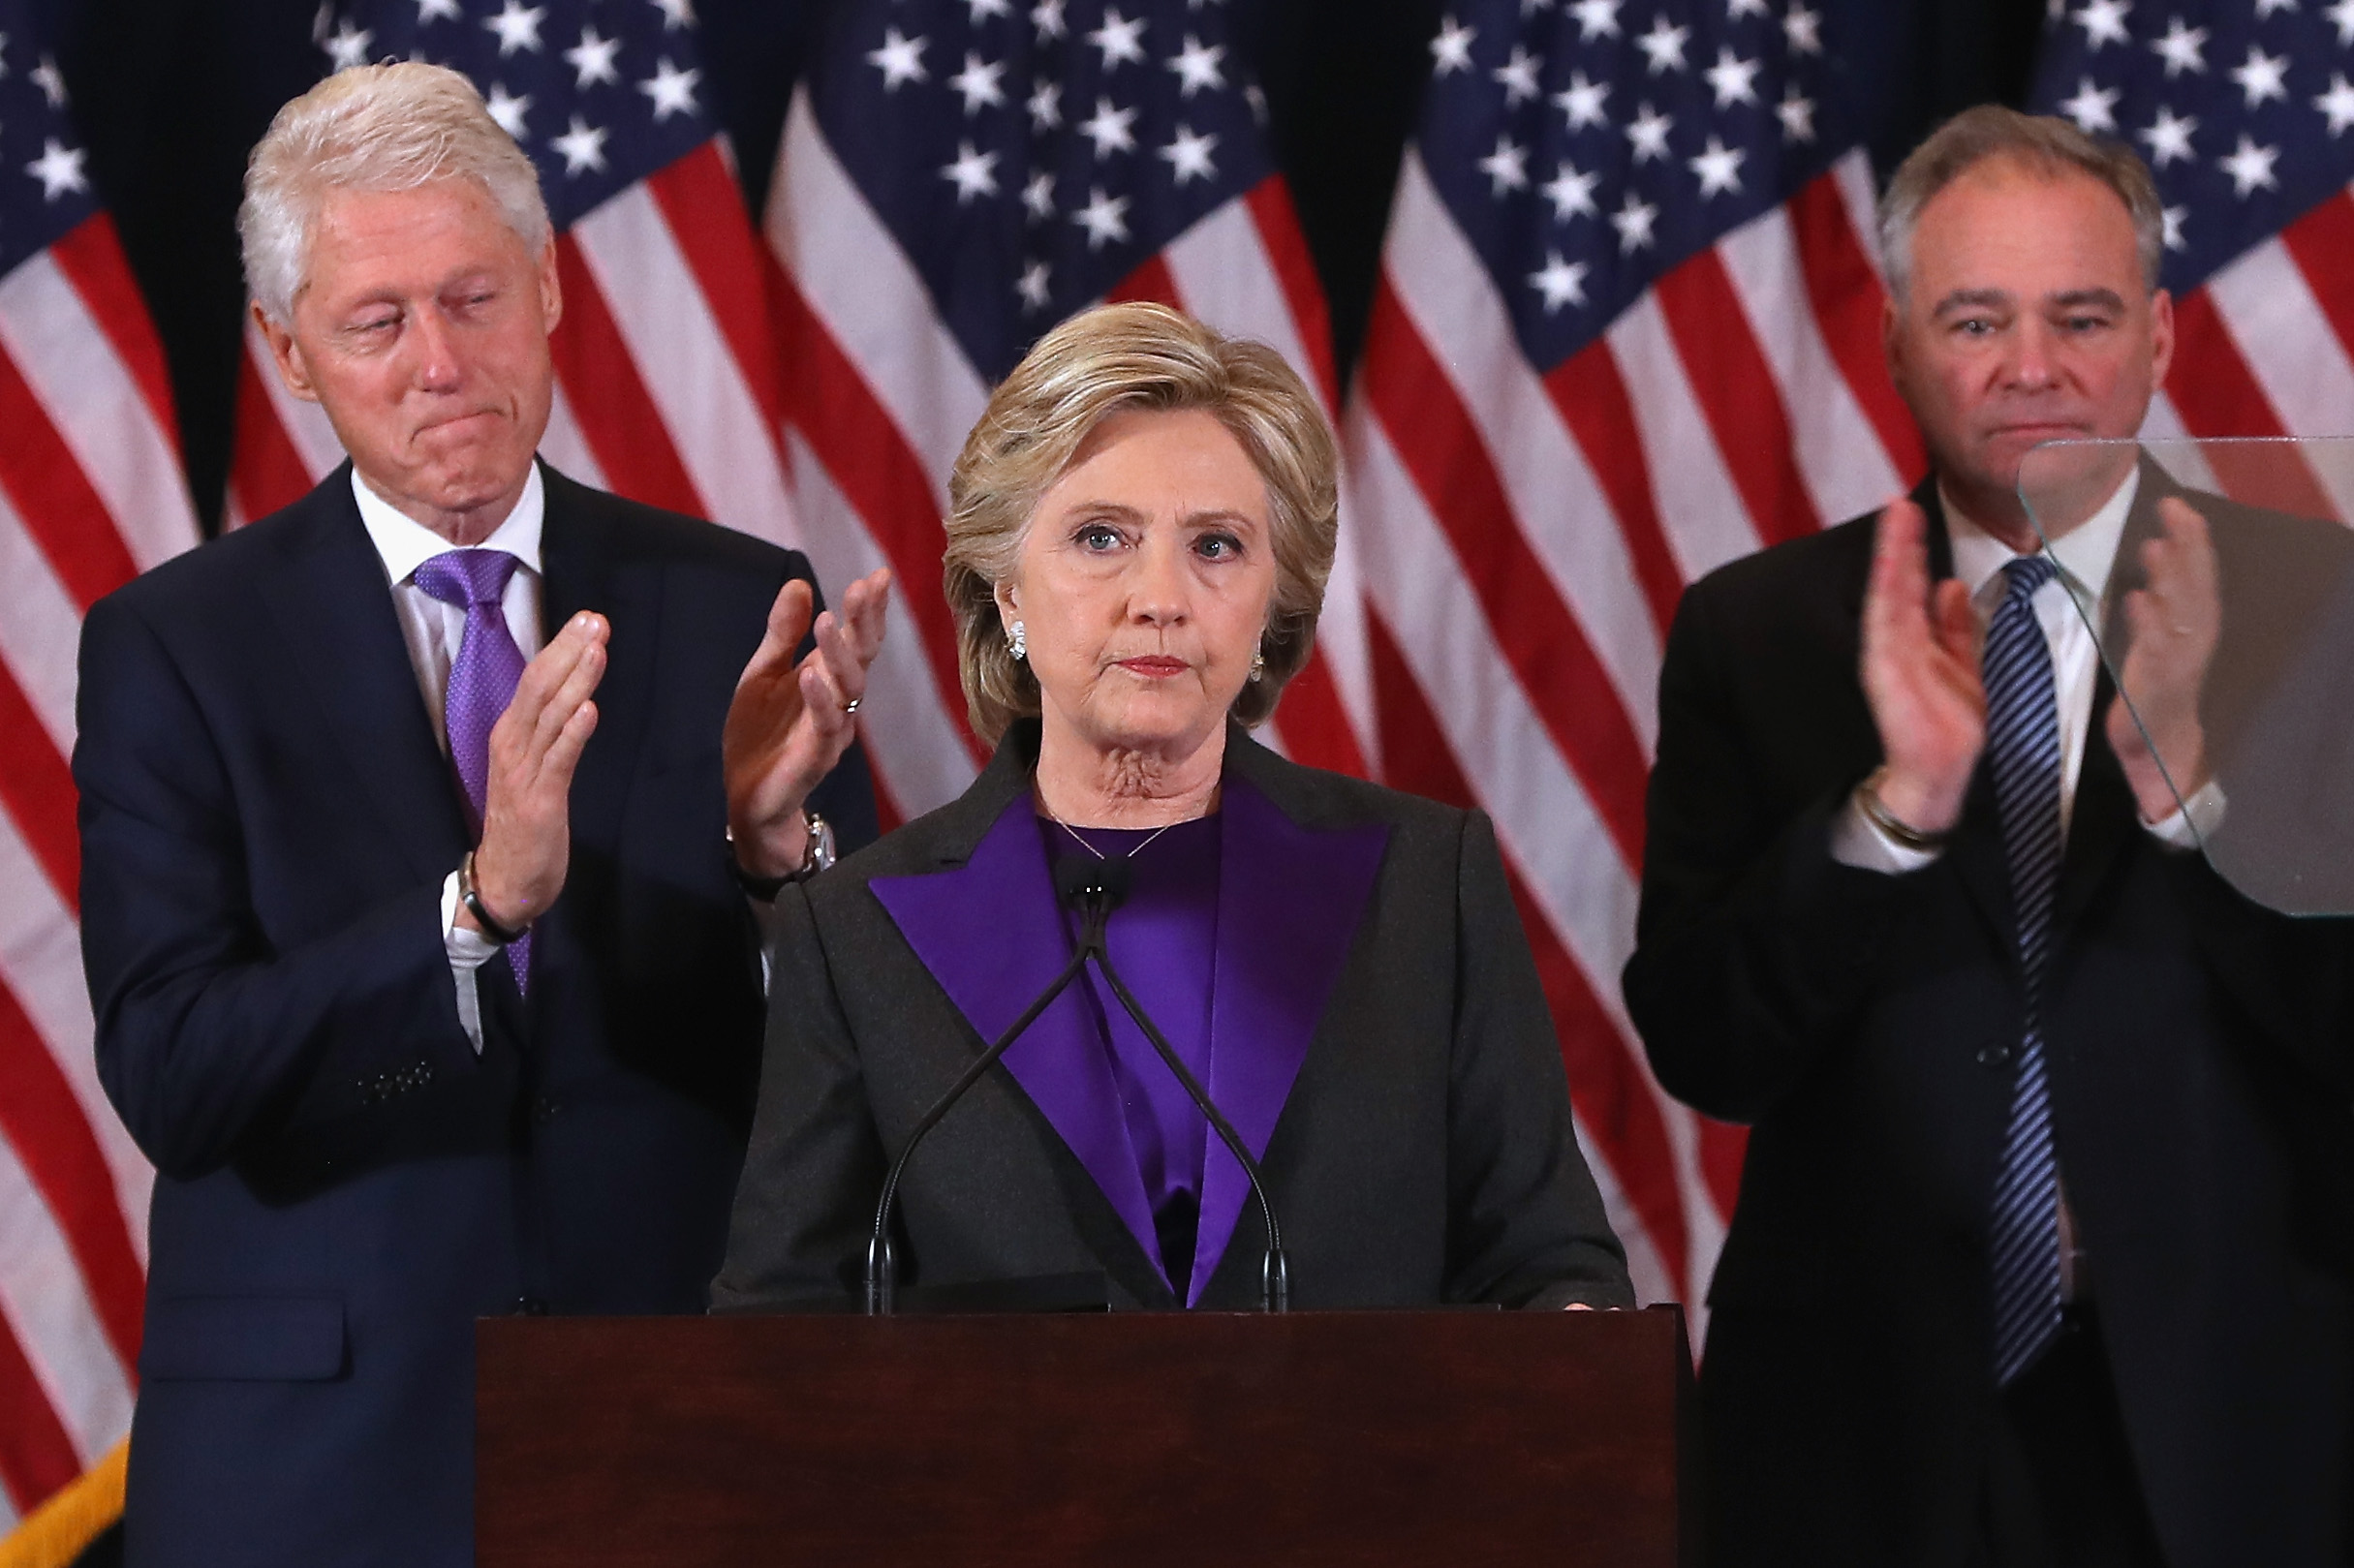 Hillary Clinton, accompanied by her husband former President Bill Clinton and running mate Tim Kaine, concedes the presidential election at the New Yorker Hotel on November 9, 2016 in New York City. (Justin Sullivan/Getty Images)